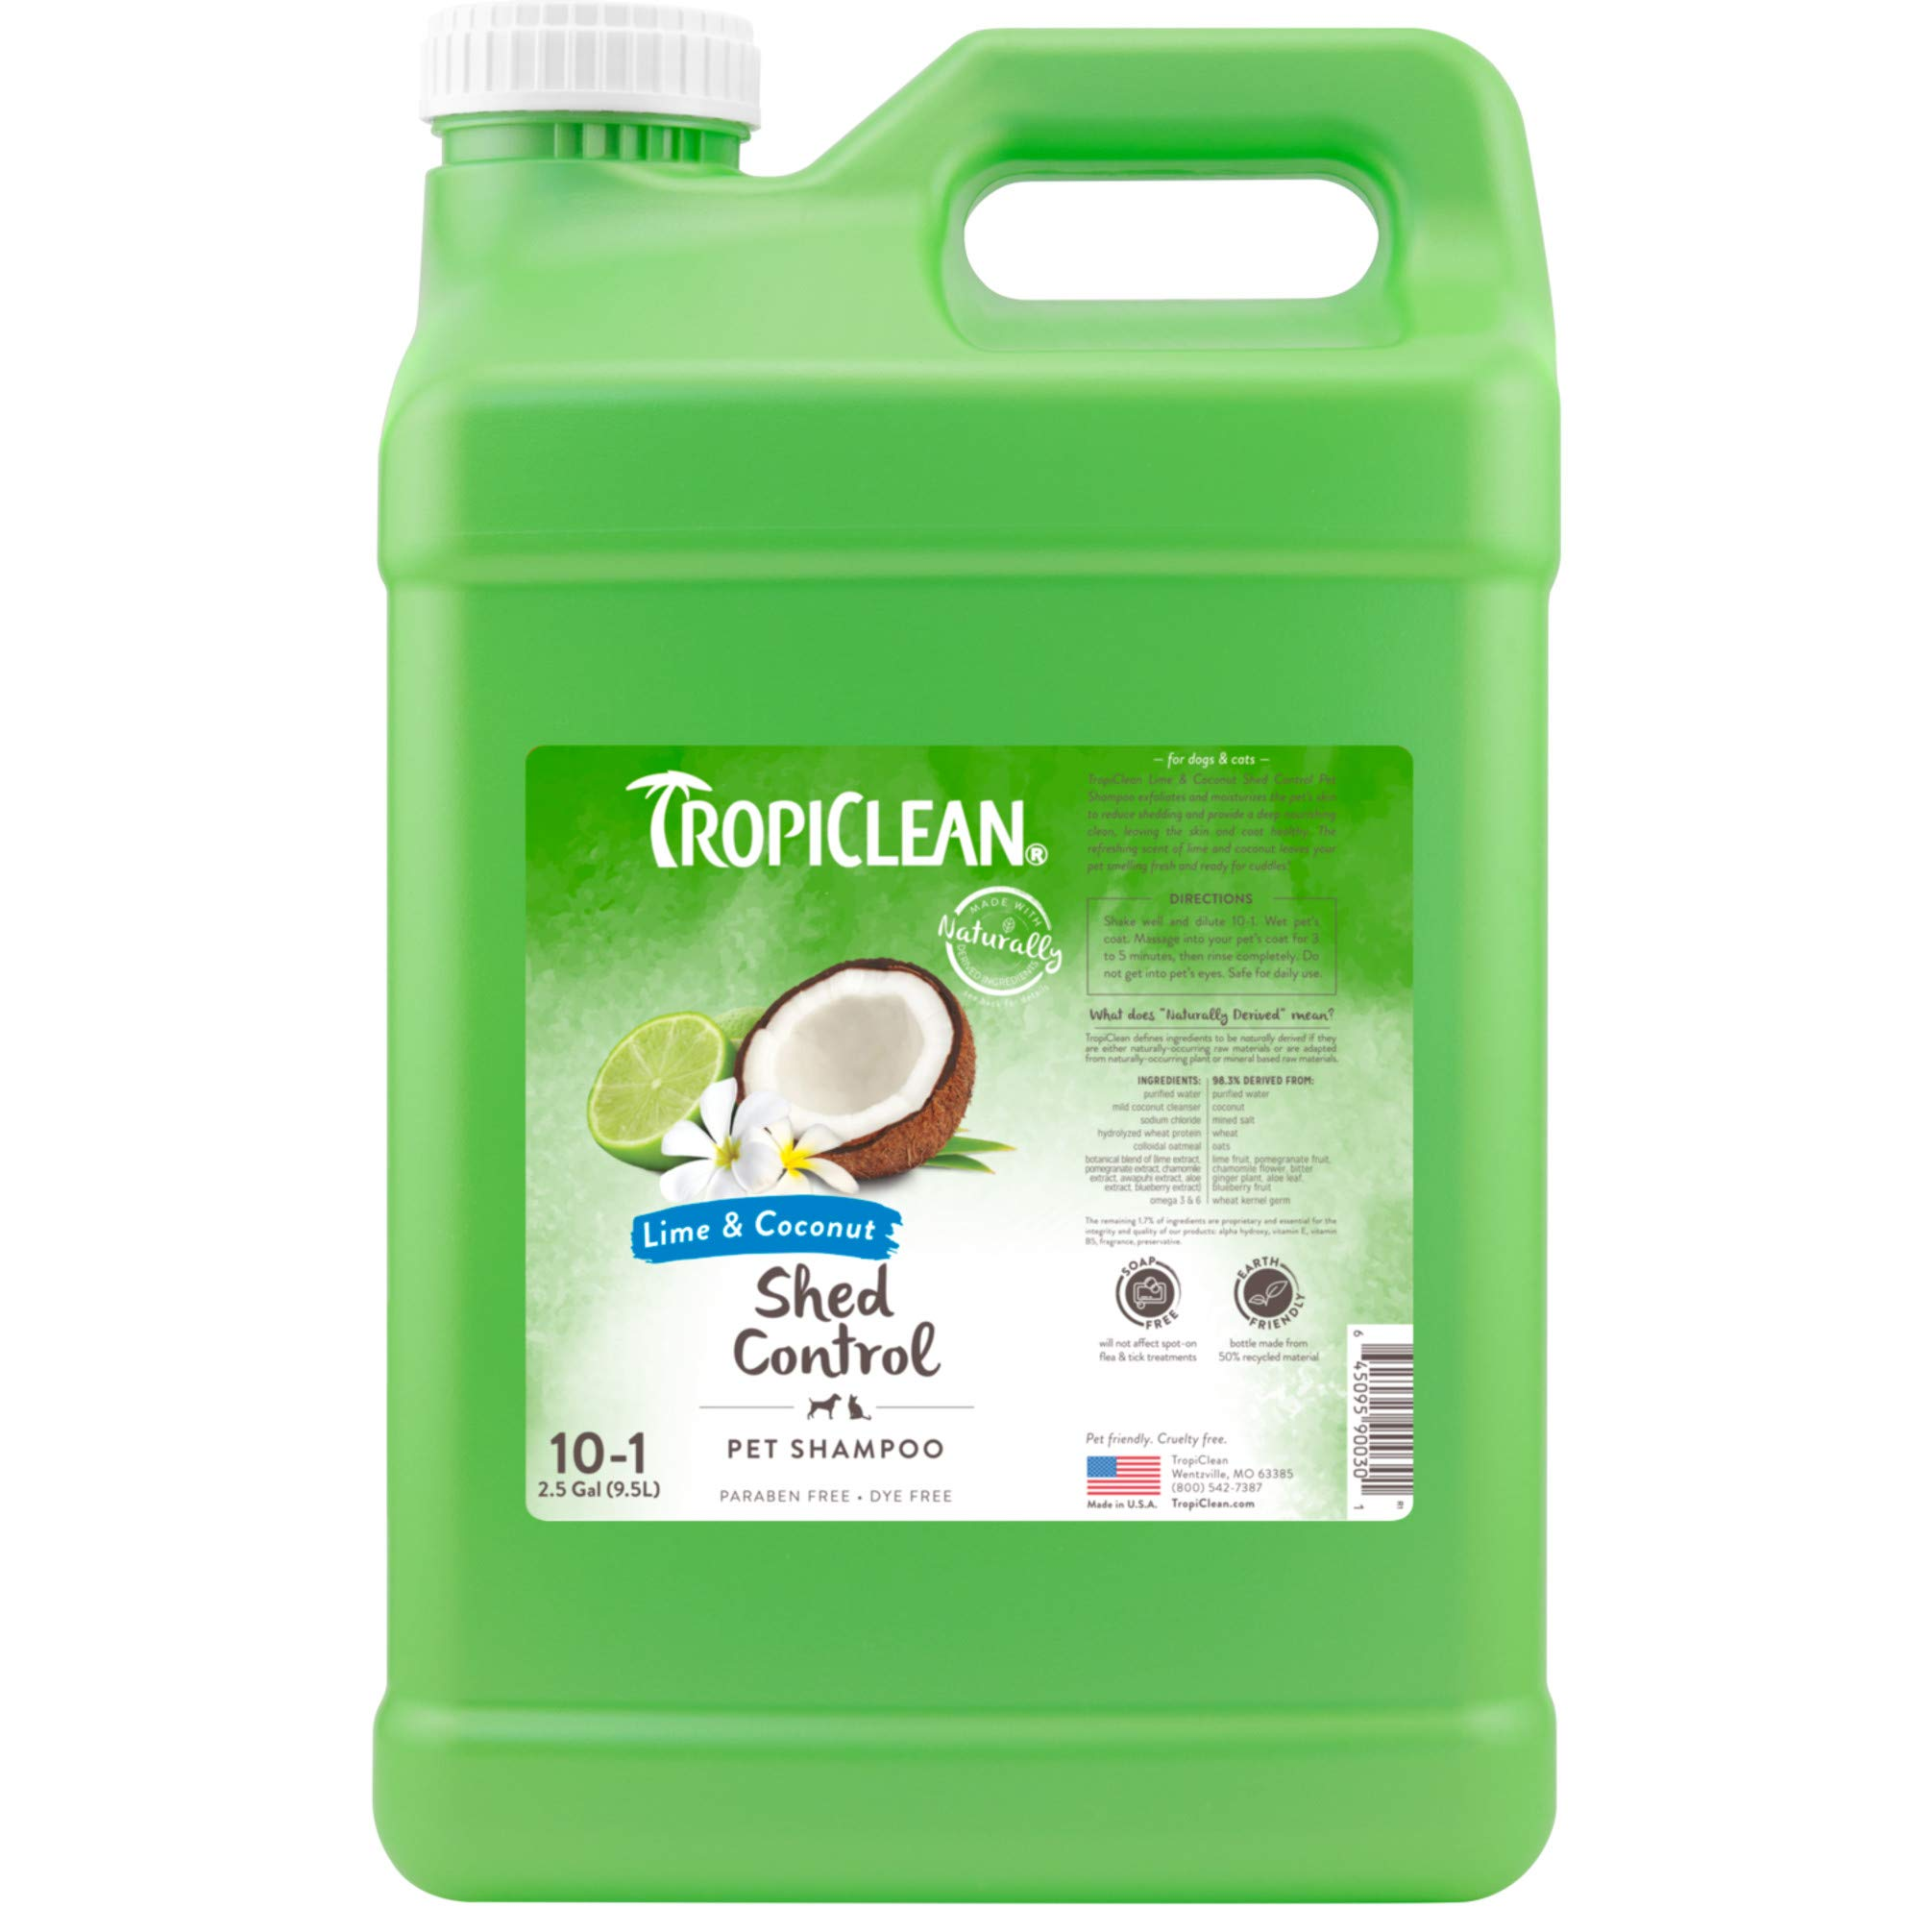 TropiClean Lime & Coconut Shed Control Shampoo for Pets, 2.5 gal, Made in USA by TropiClean